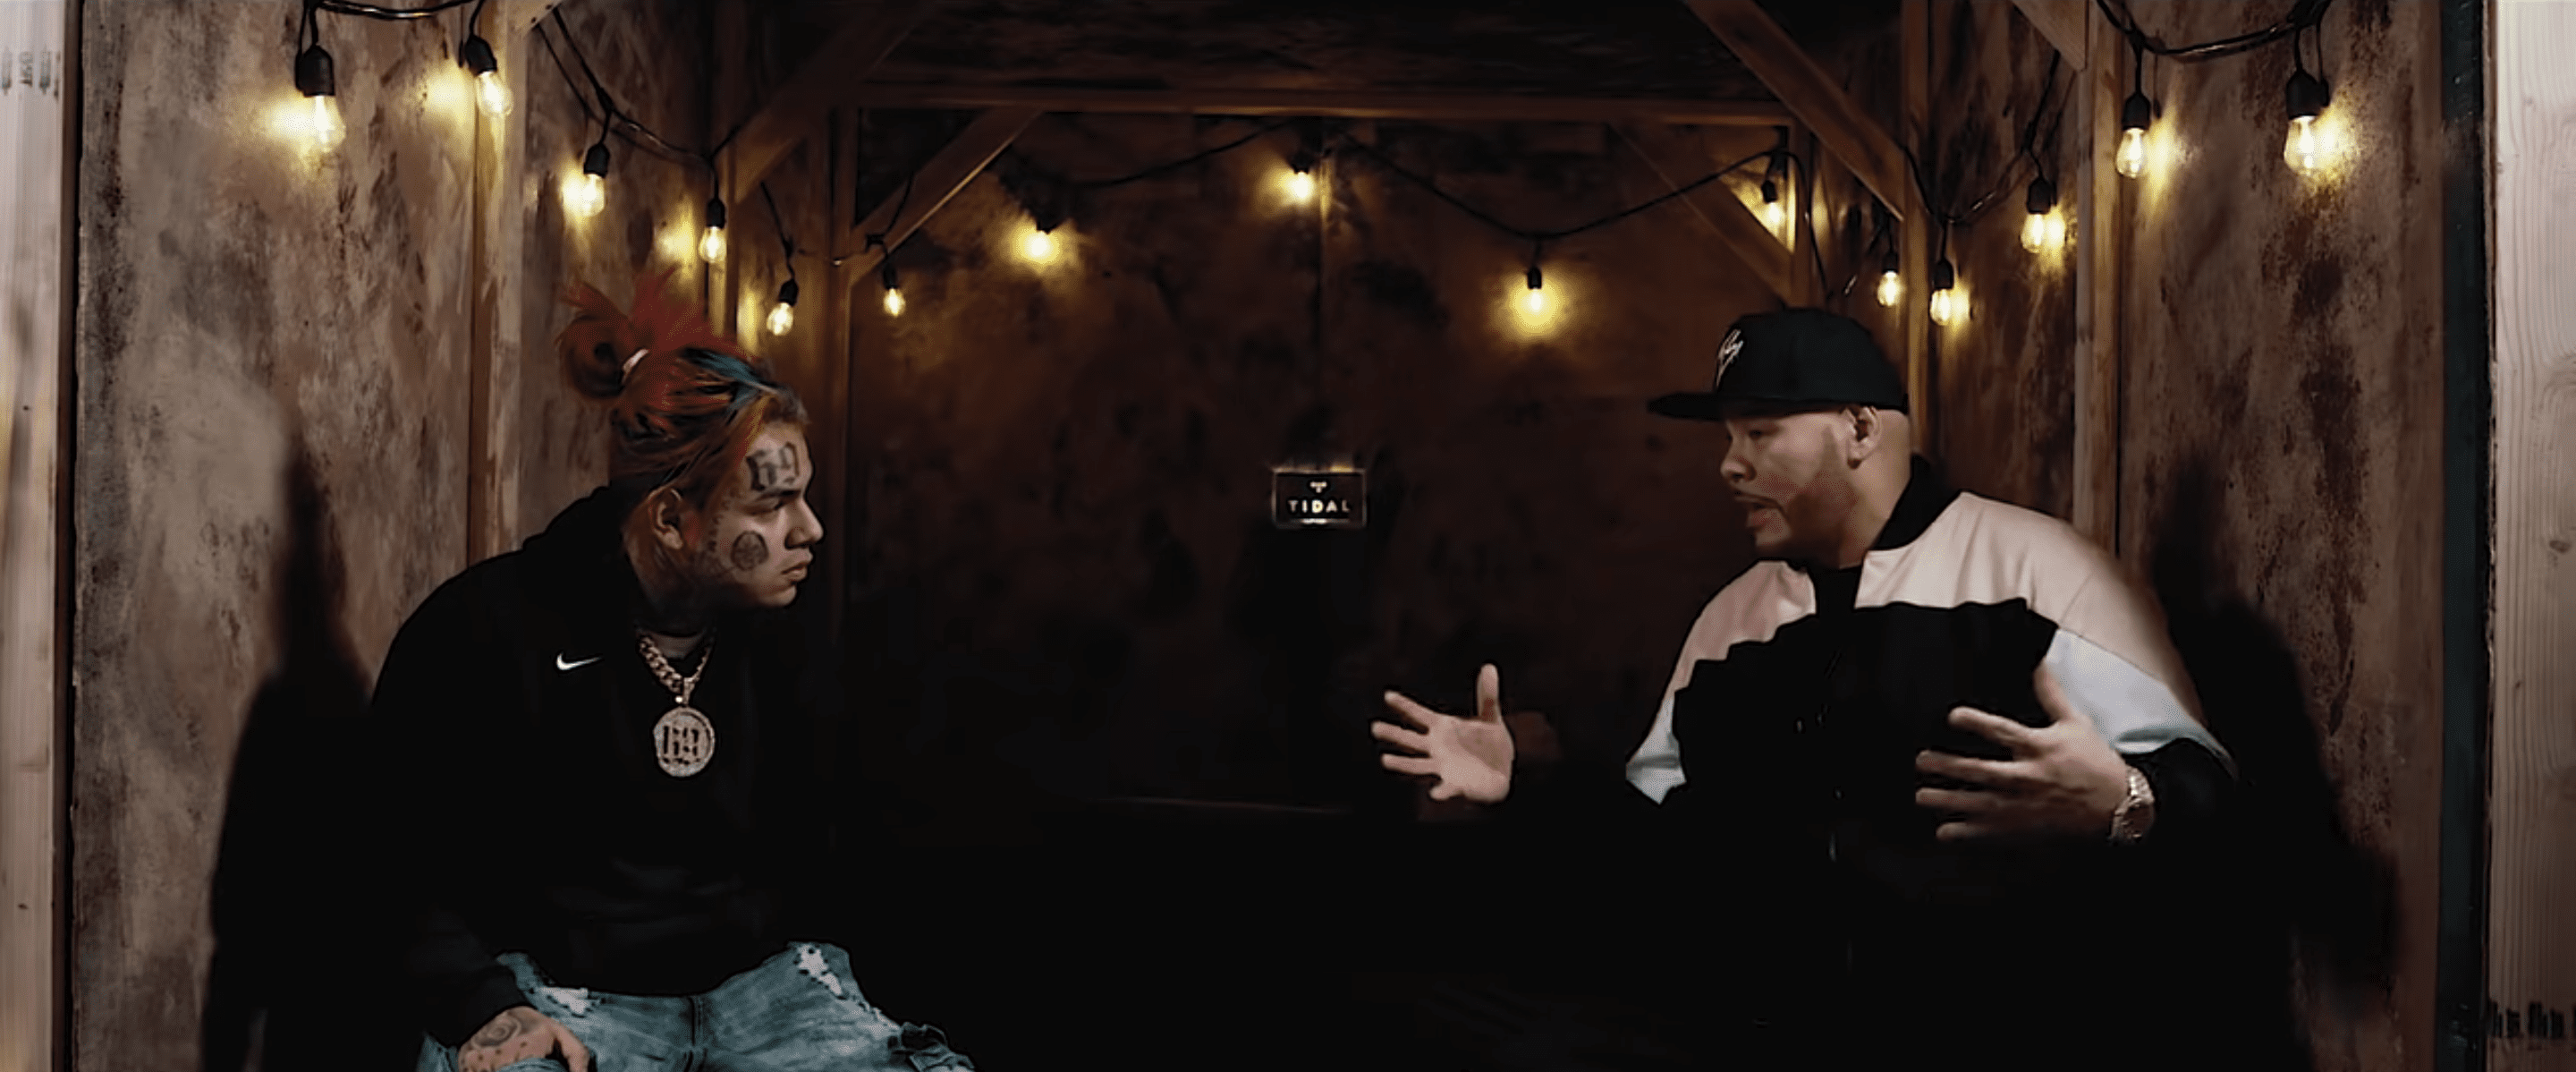 [WATCH] Fat Joe on Tekashi 6ix9ine: 'He Can't Come Around Me Ever Again'